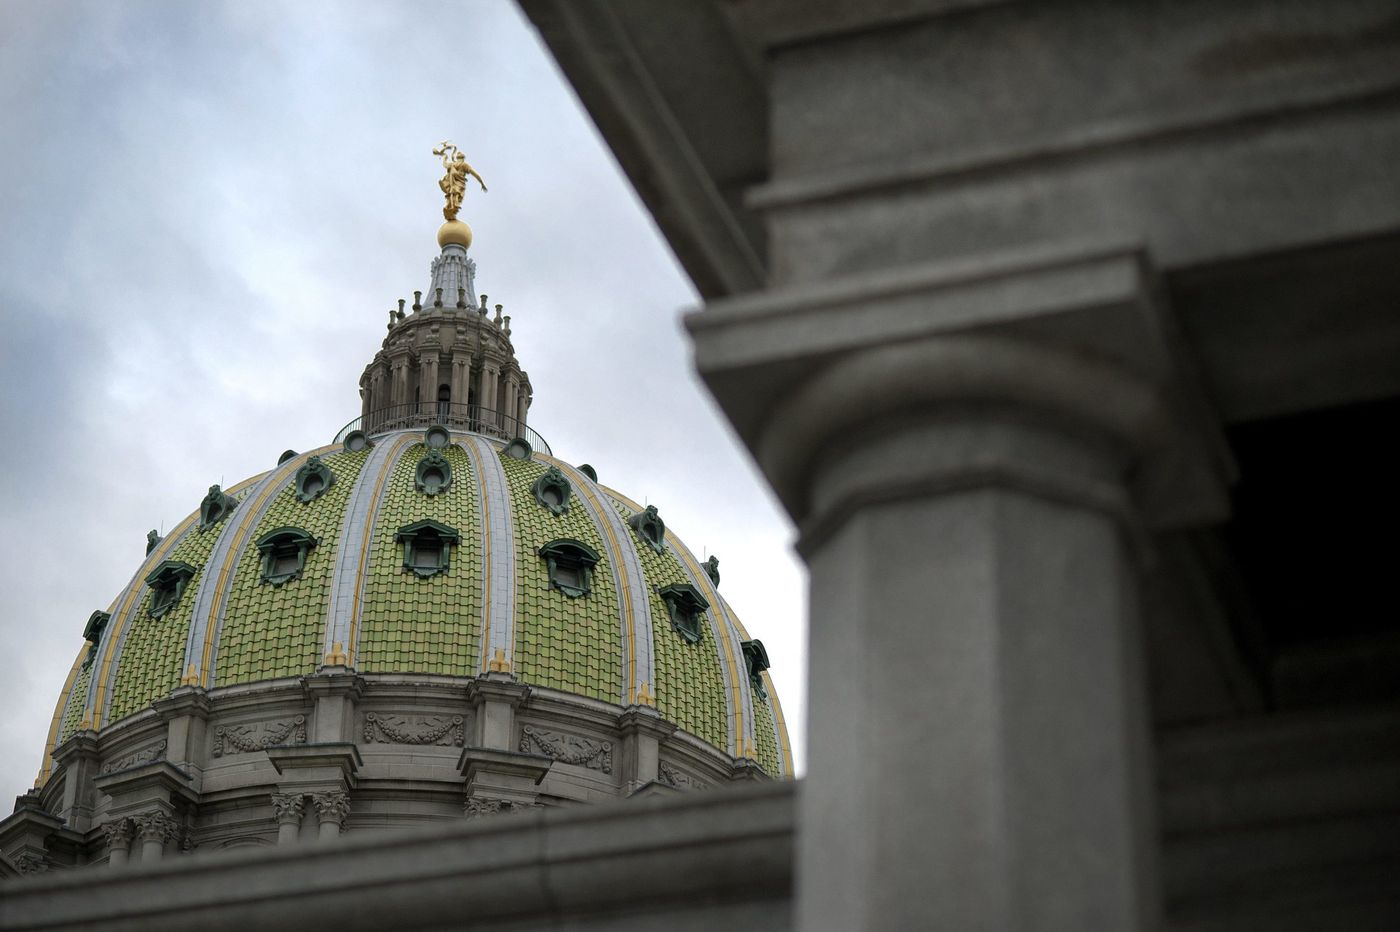 Pa. Senate passes anti-gerrymandering bill with 'poison pill' judicial districting amendment